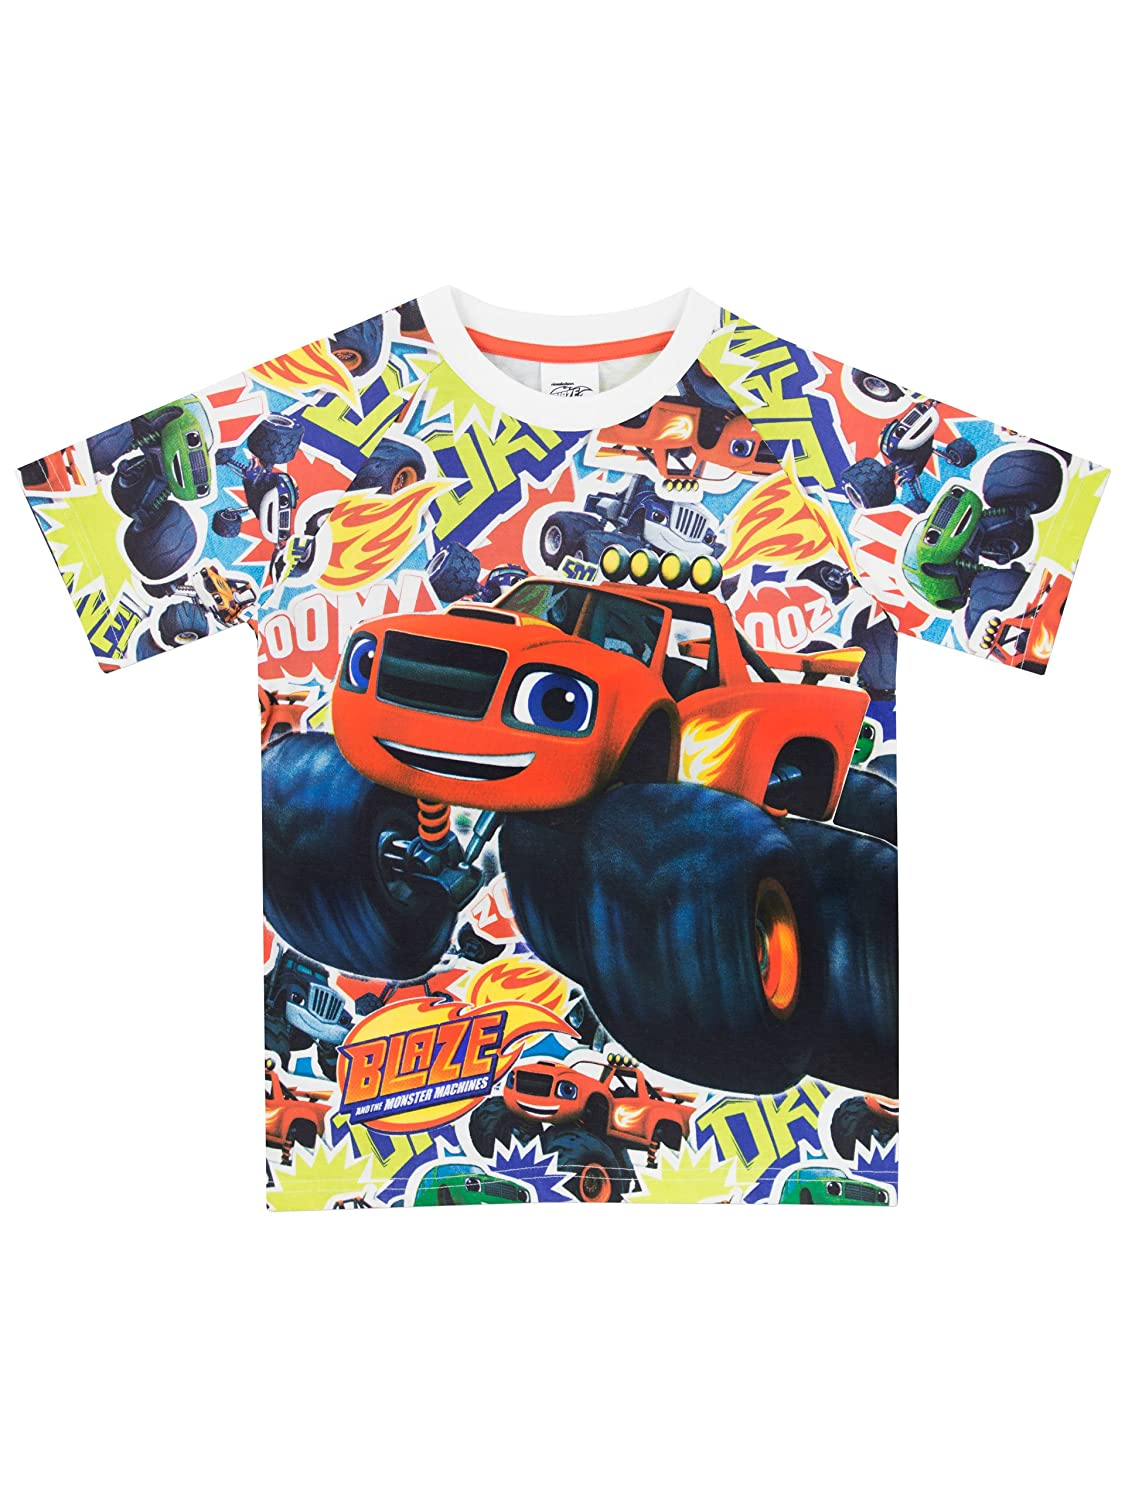 Blaze and the Monster Machines Camiseta para Niño - Blaze y Los Monster Machines: Amazon.es: Ropa y accesorios